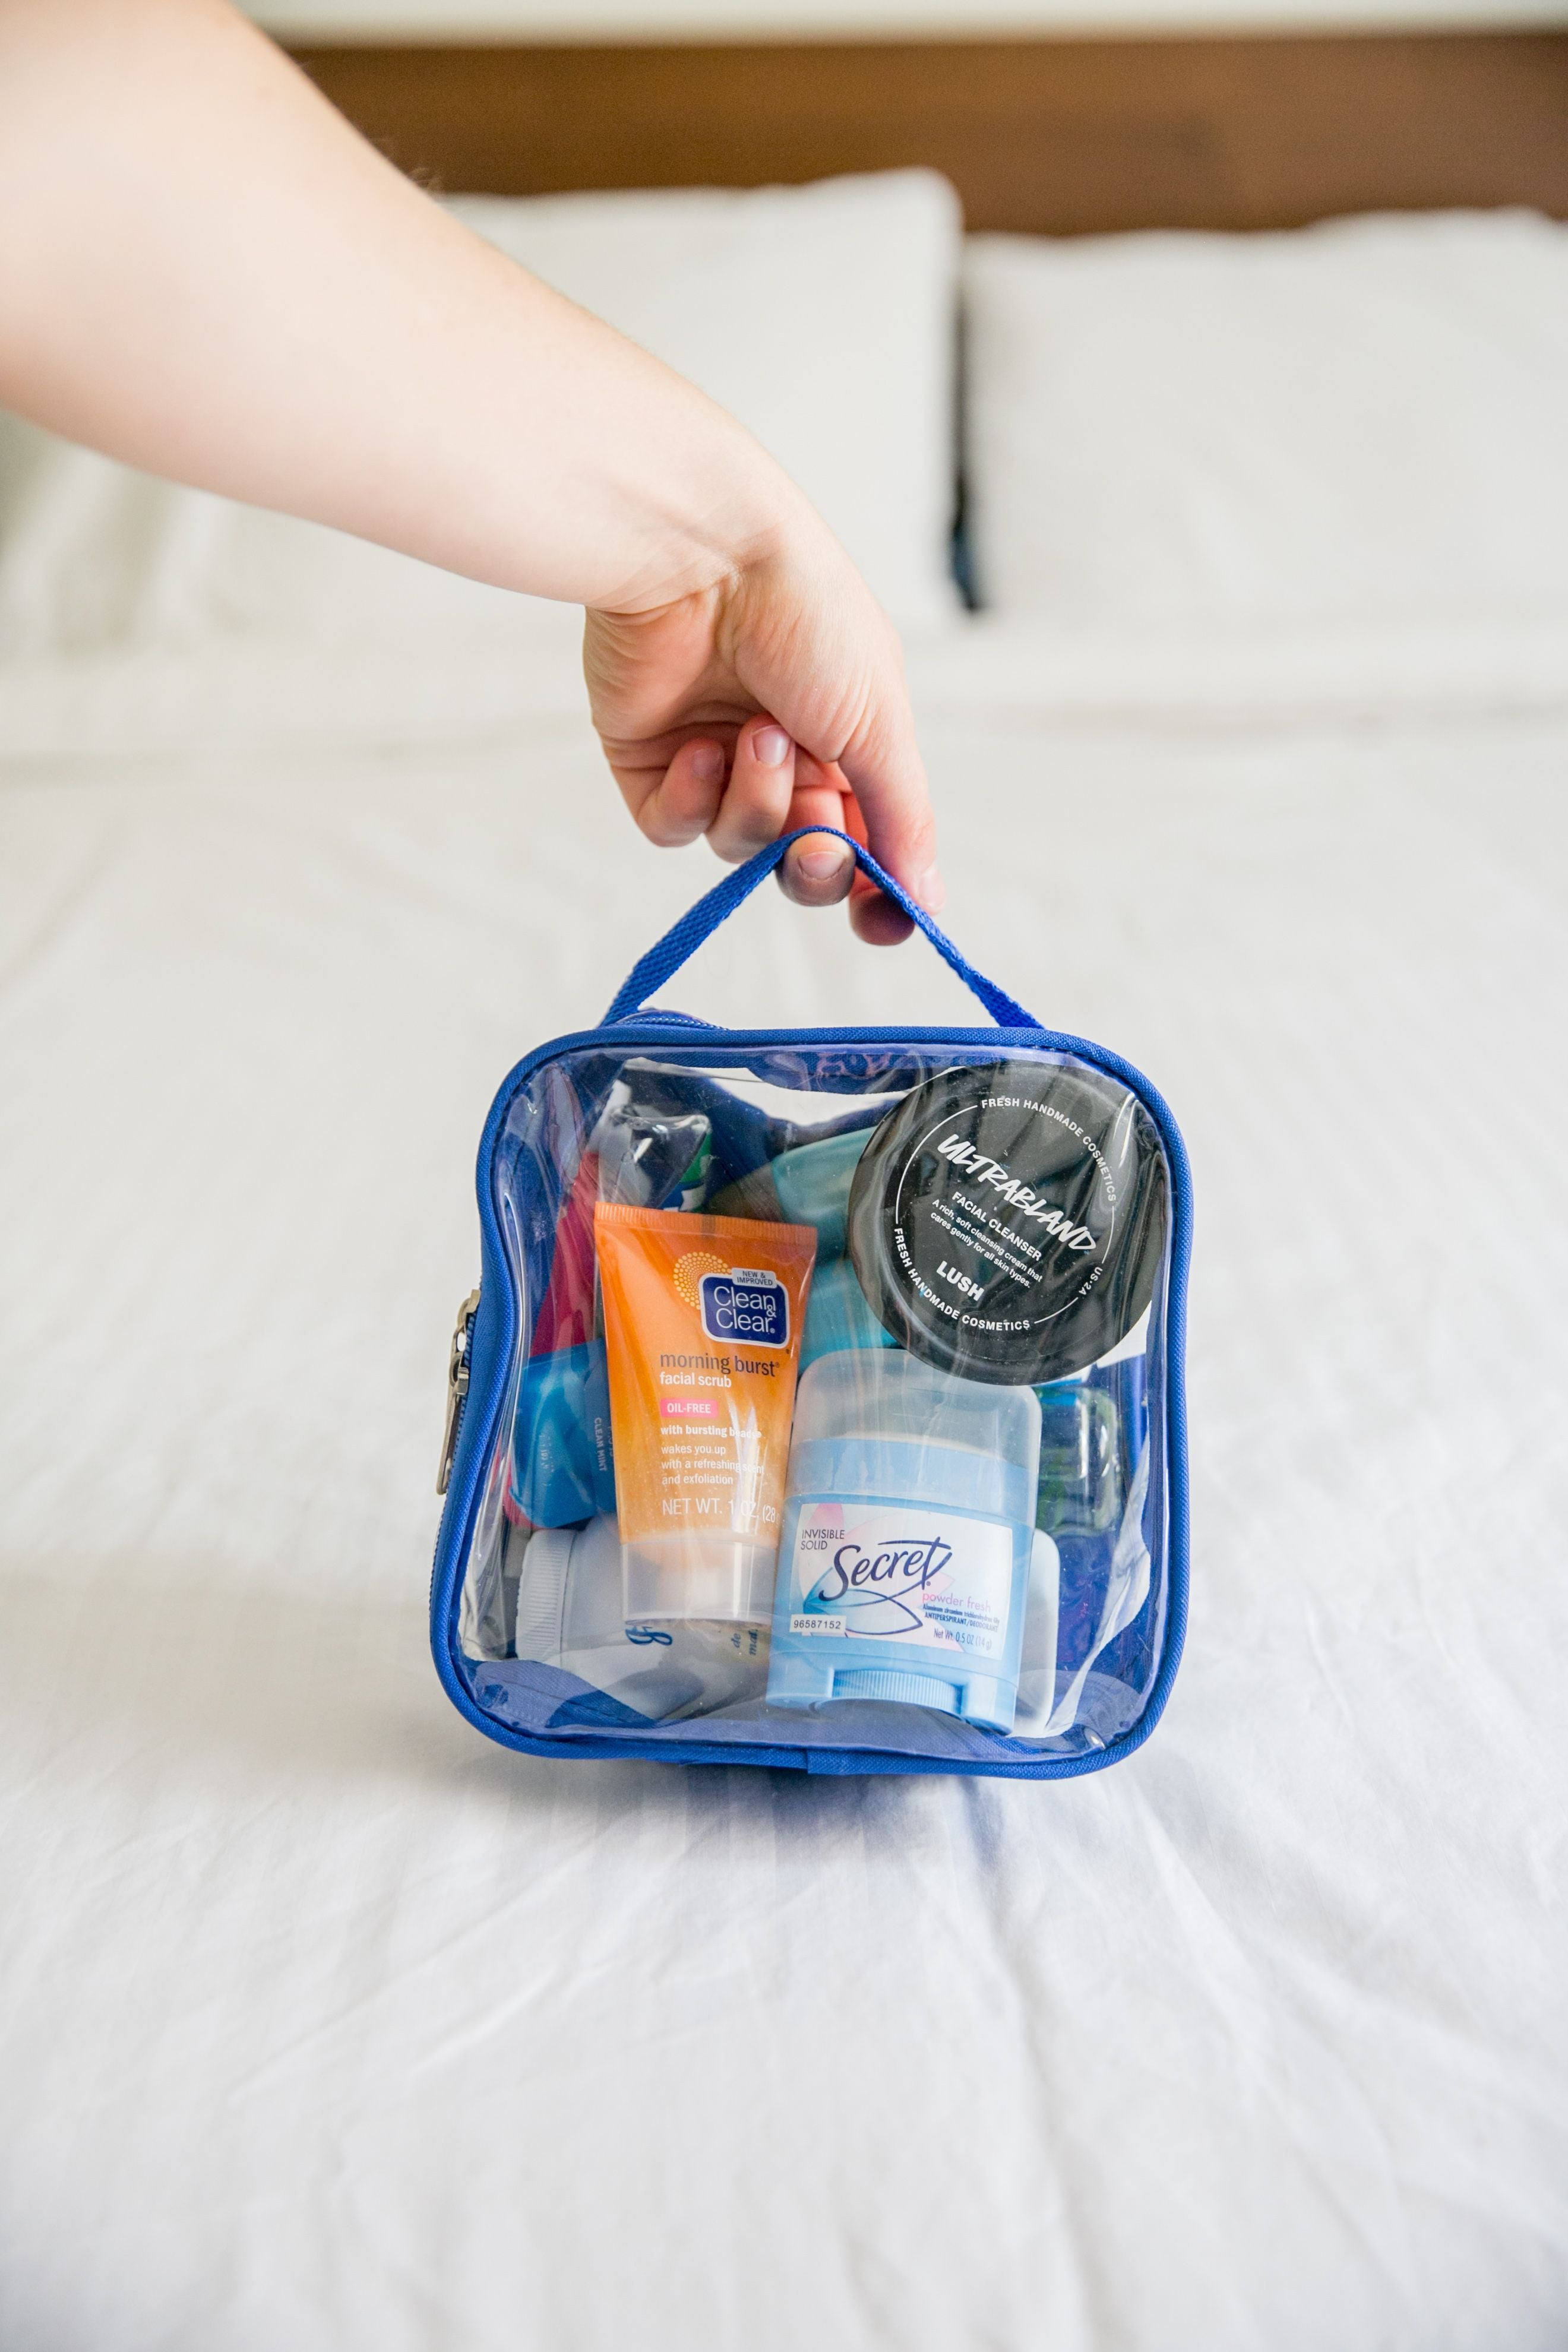 TSA Approved Toiletry Bag reinforced stitching and handle